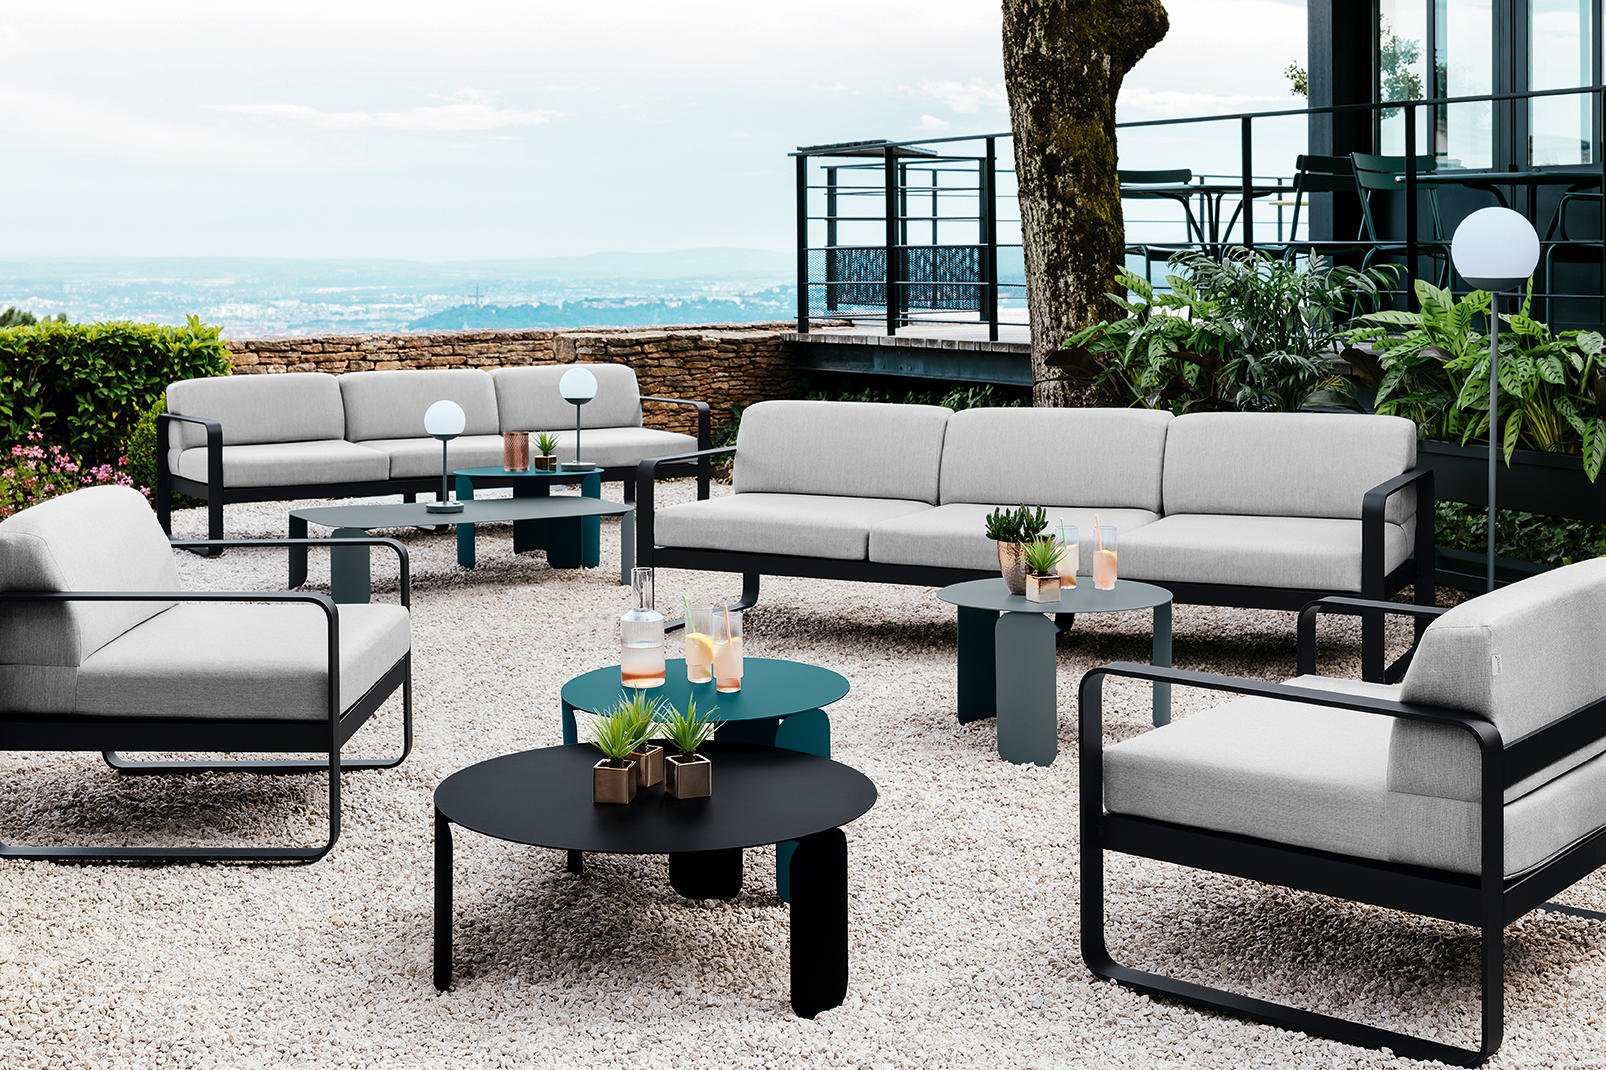 Outdoorsofa Bellevie, Outdoorlounge, Fermob